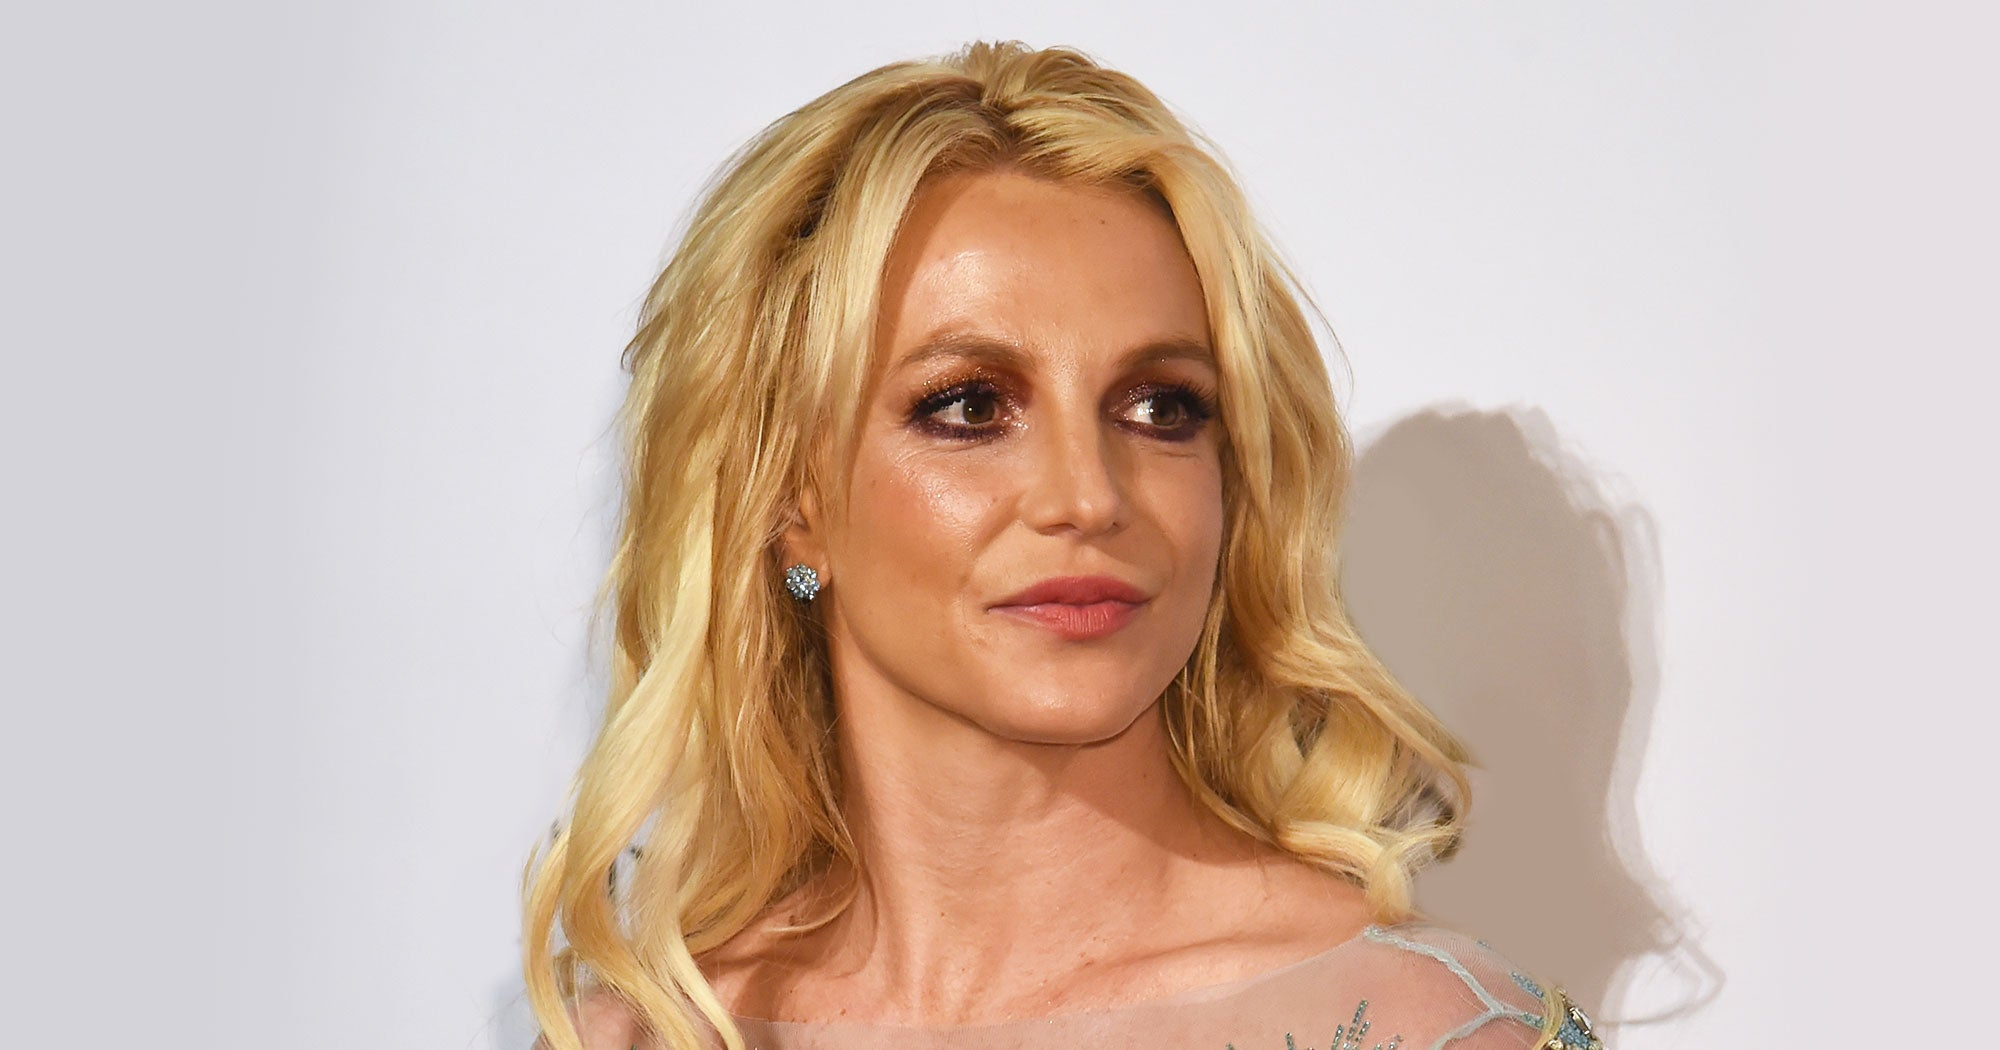 After 11 Years, Britney Spears Father Removed As Conservator